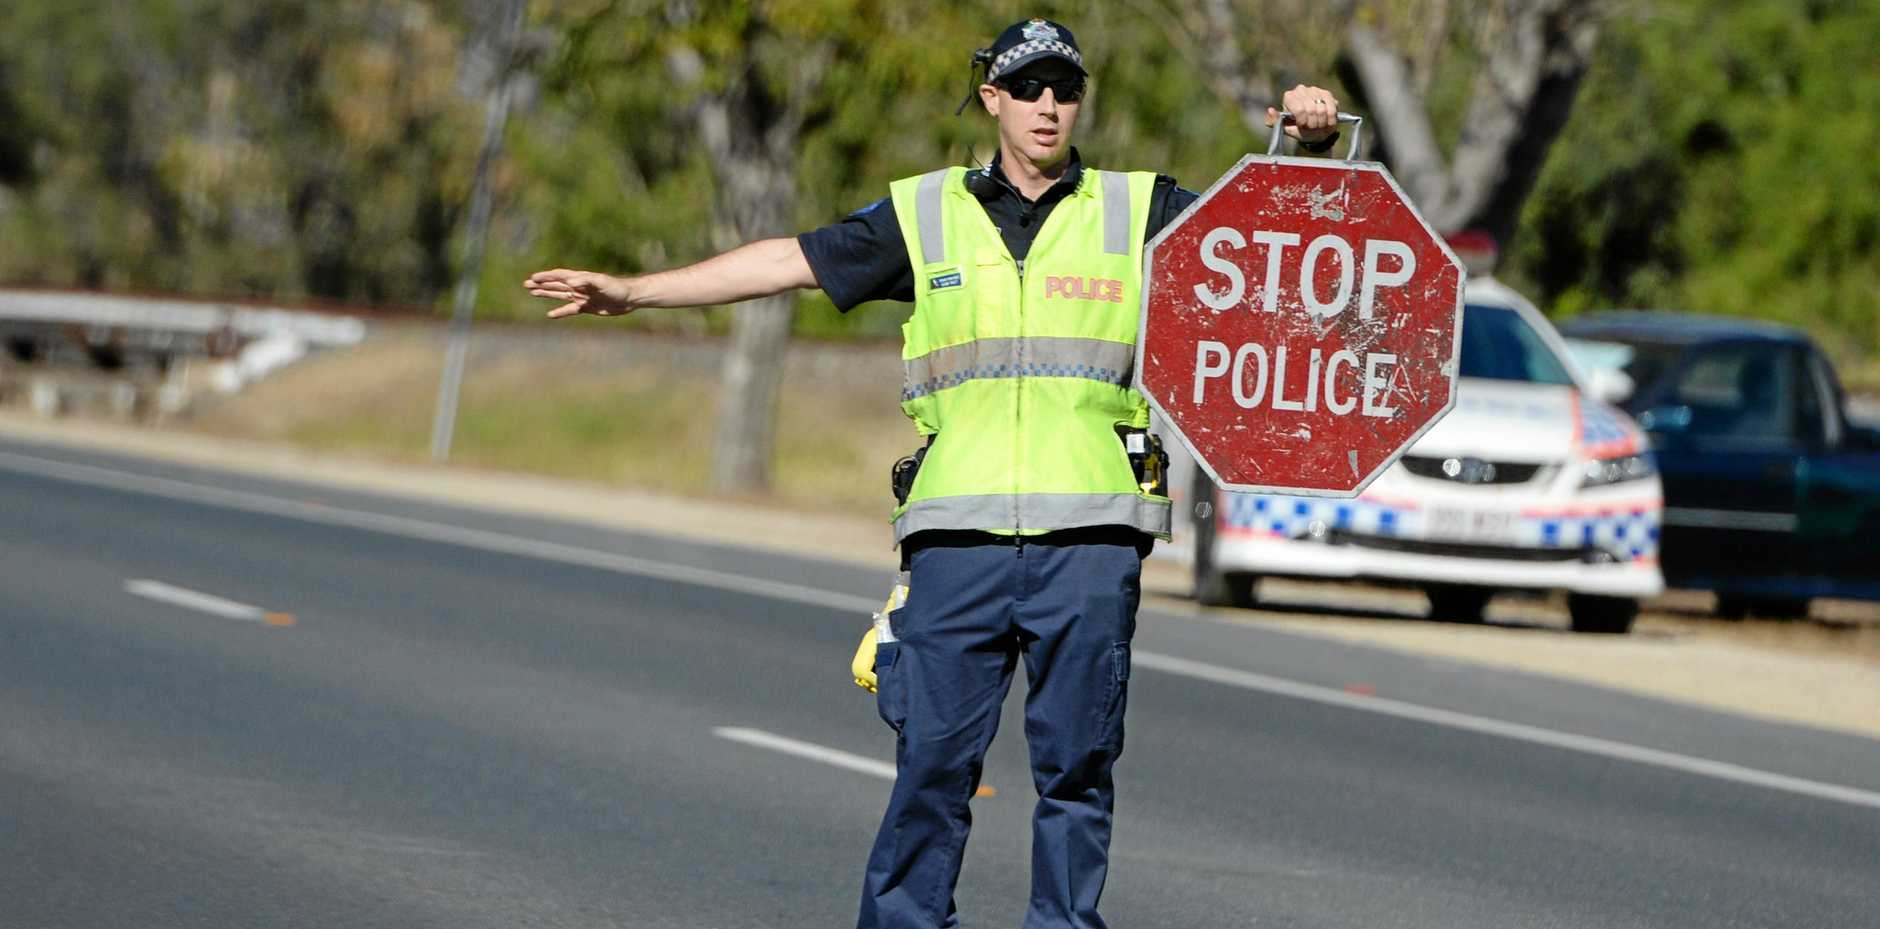 A GLADSTONE woman has fronted court for driving nearly four times over the legal alcohol limit.